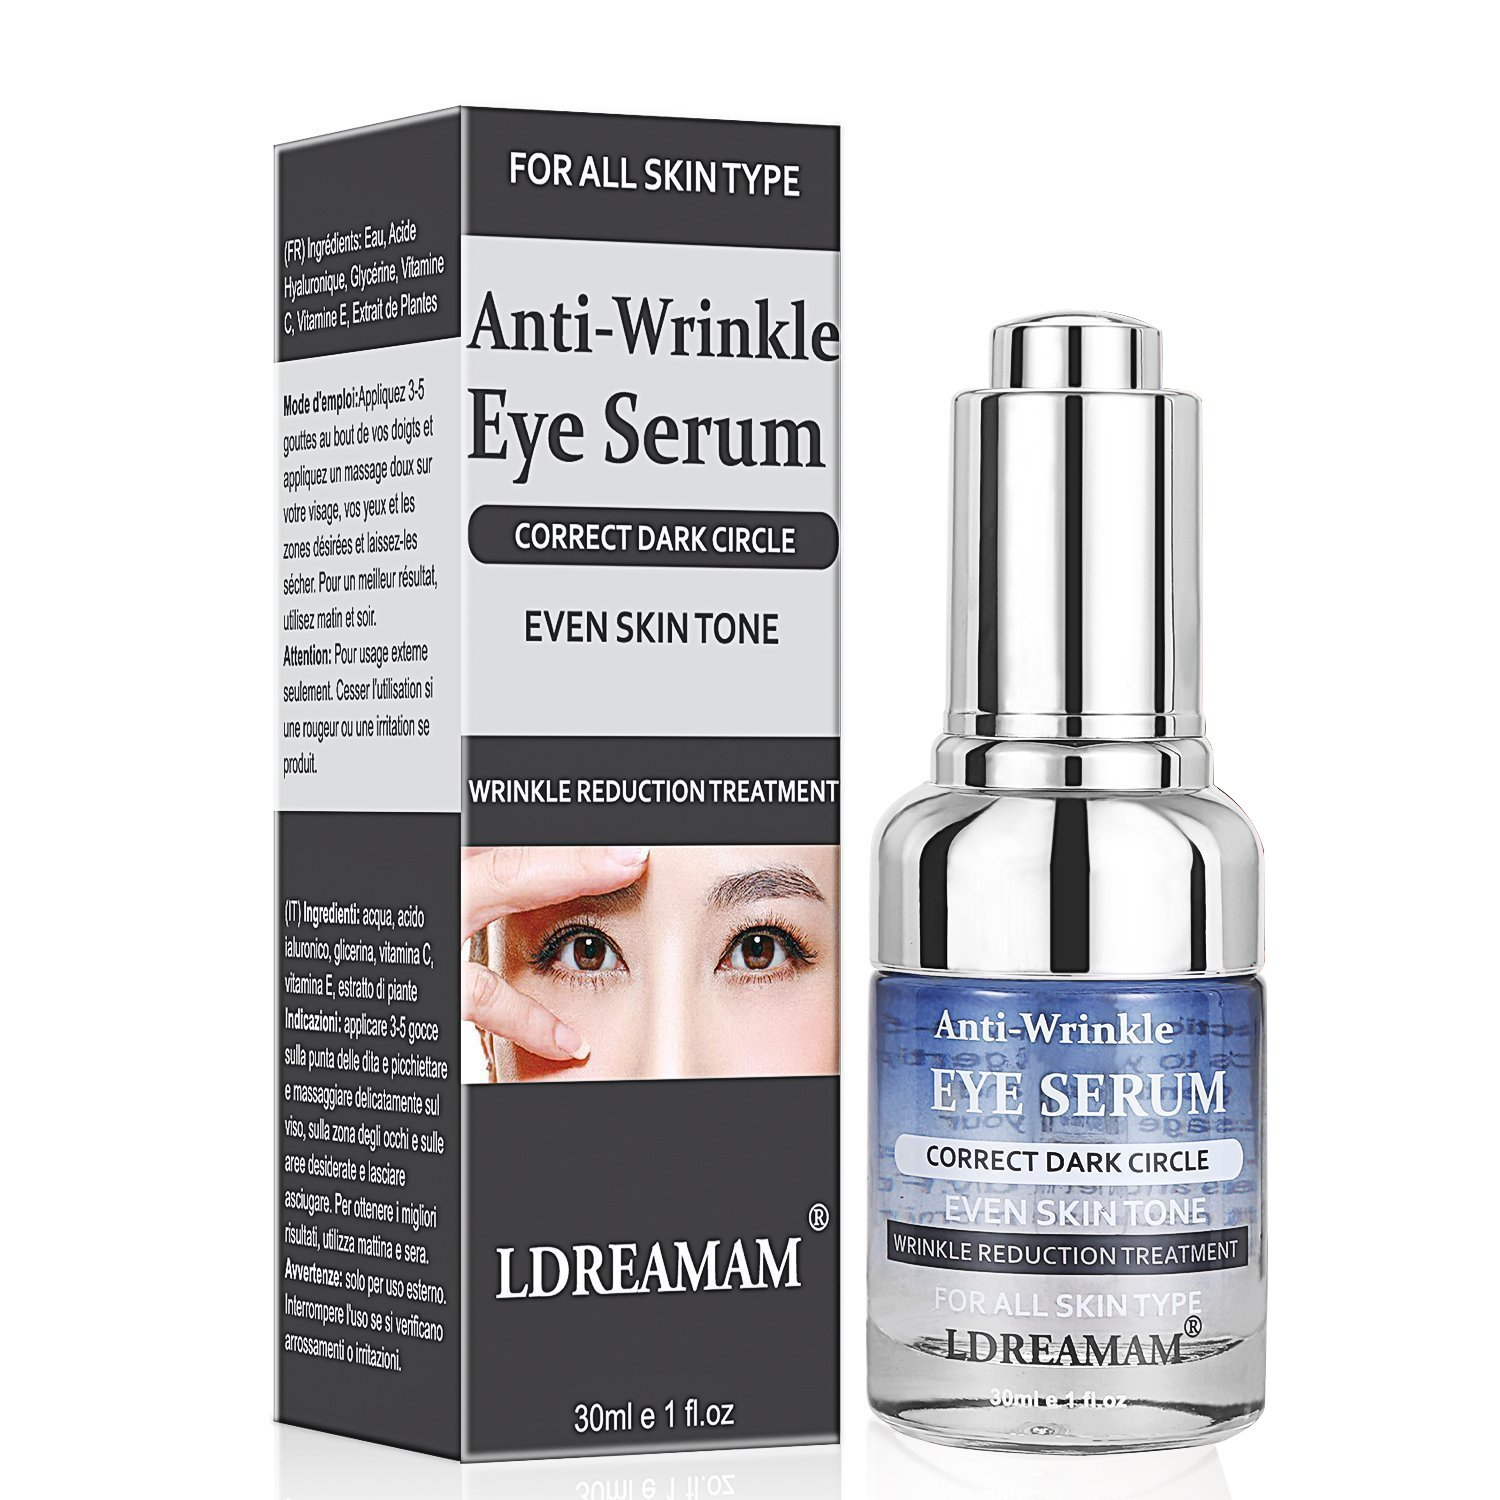 Anti Wrinkle Eye Serum,Anti Ageing Eye Serum, Hydrating Eye Serum,for Eyes&Skin ,Pure Moisturizer to Hydrate & Enriches Skin, Reduce Wrinkles & Fine Lines,Natural Under Eye Repair Treatment Serum And Bag Remover Gel LDREAMAM